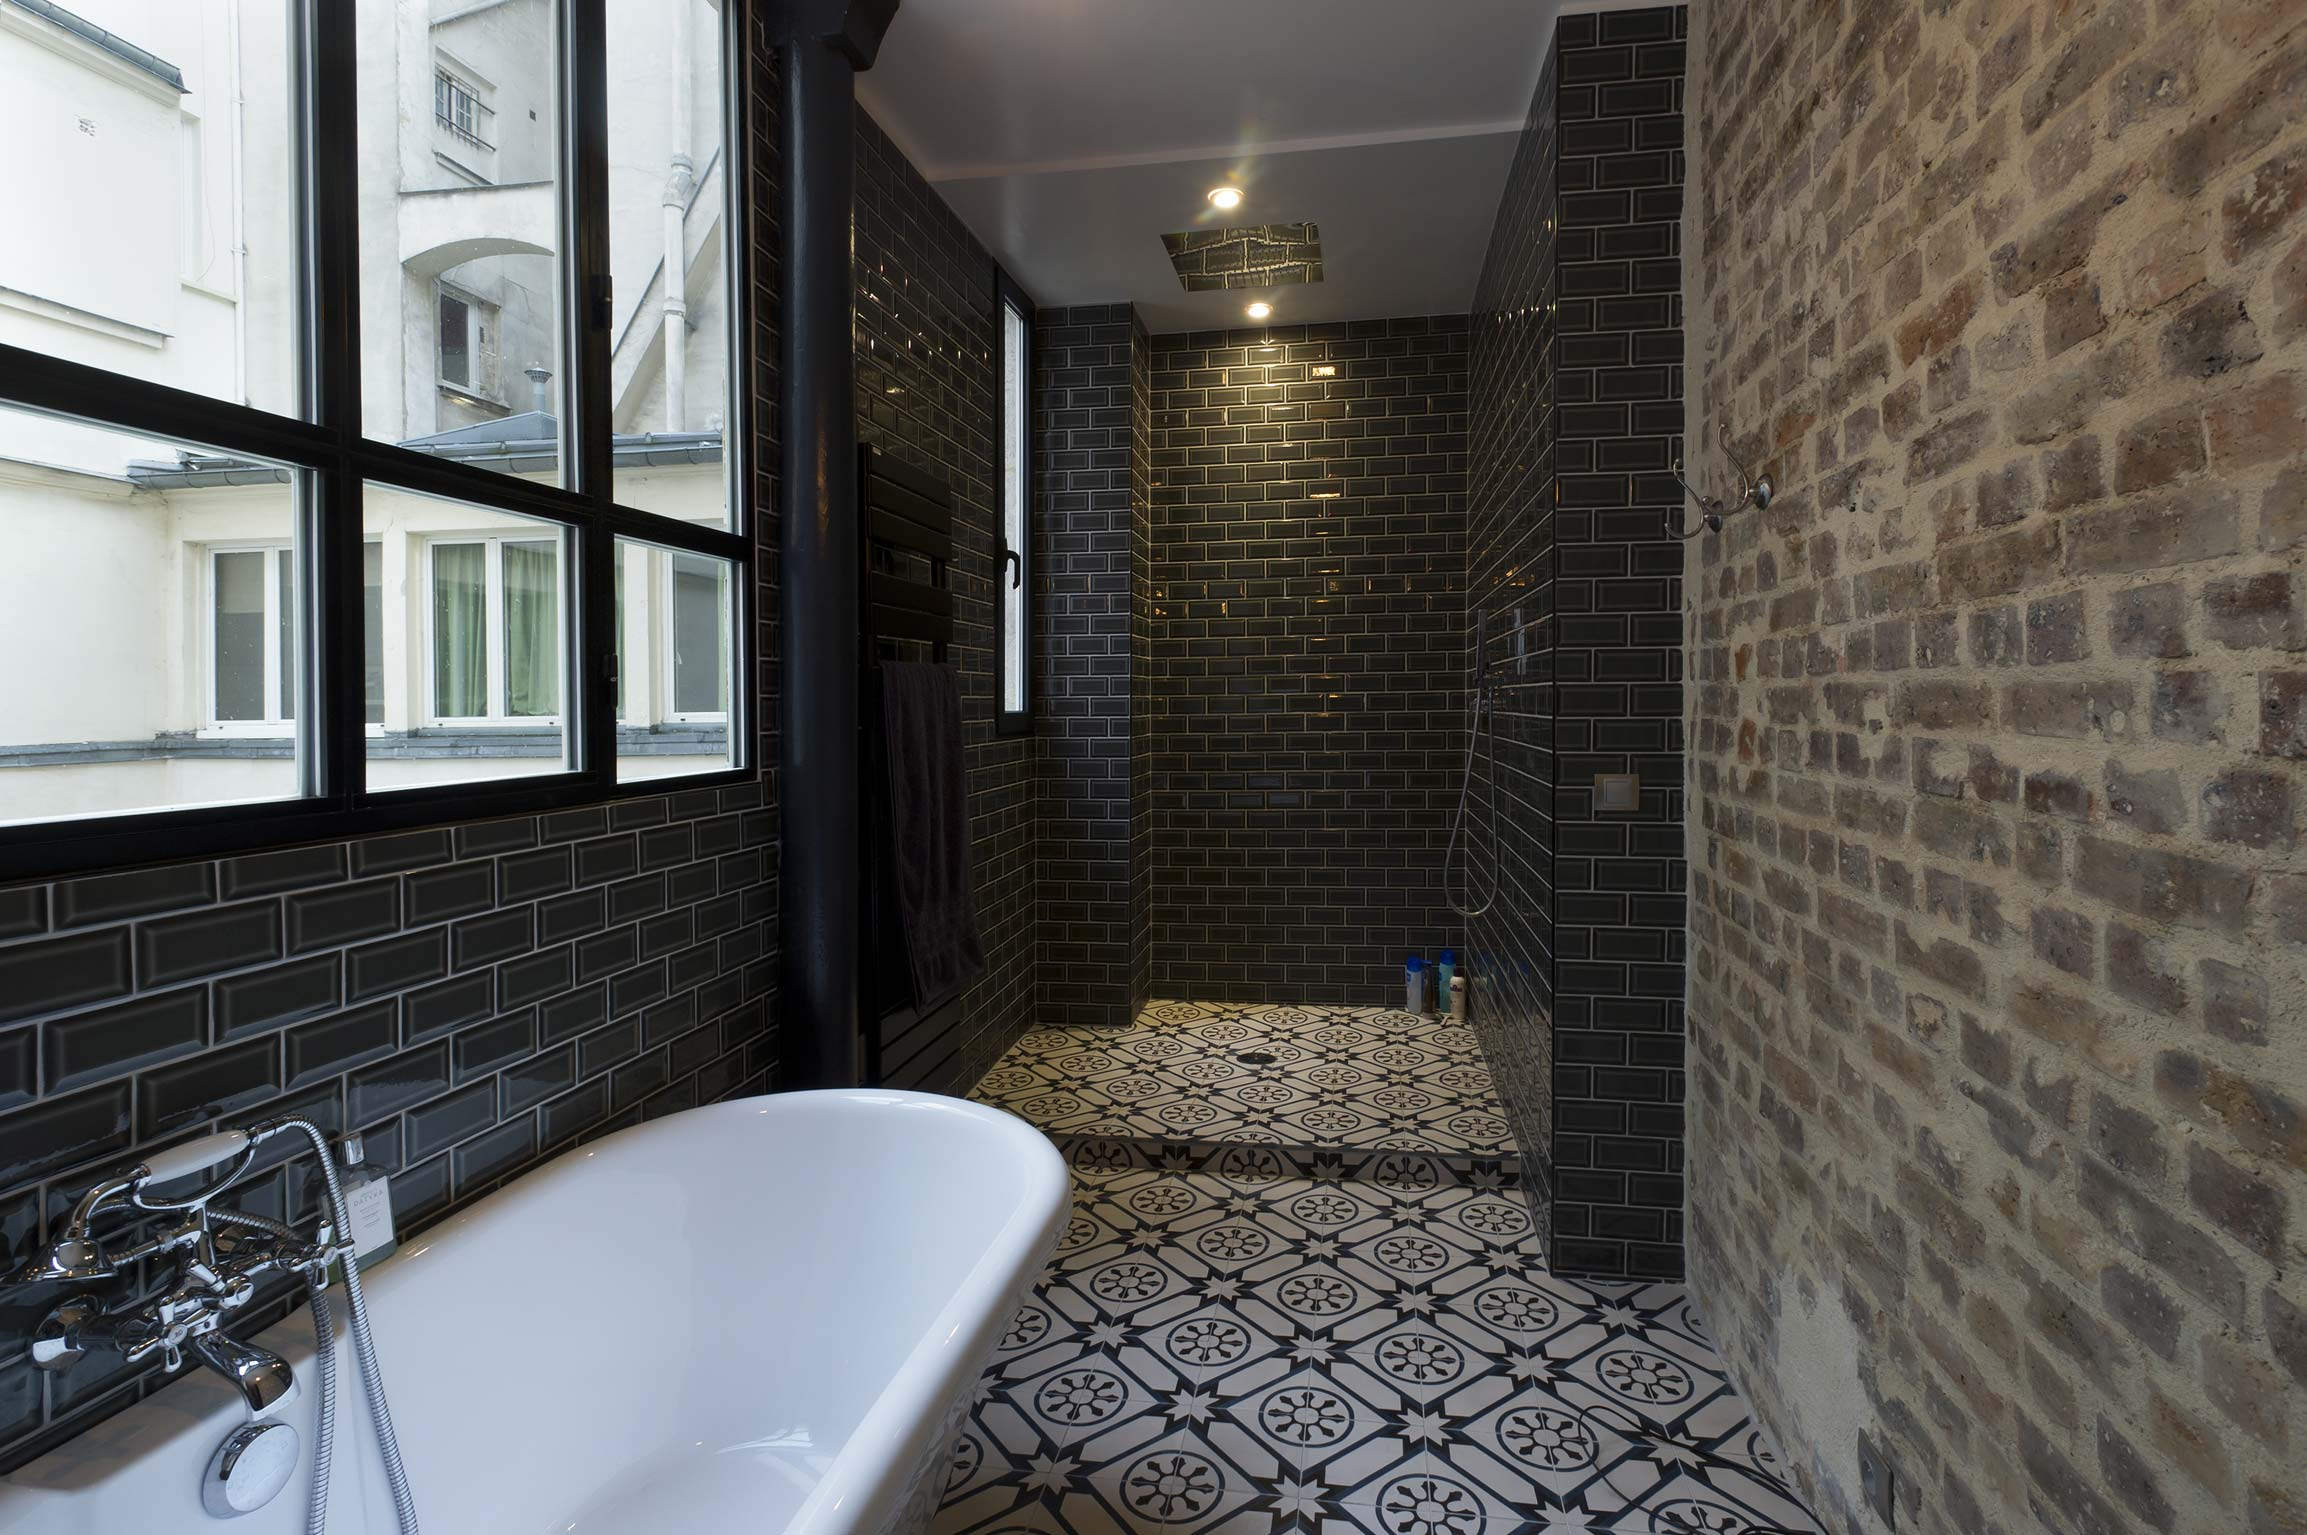 Salle De Bain Carreau Metro Contemporain : Douche à l italienne en carreau de ciment